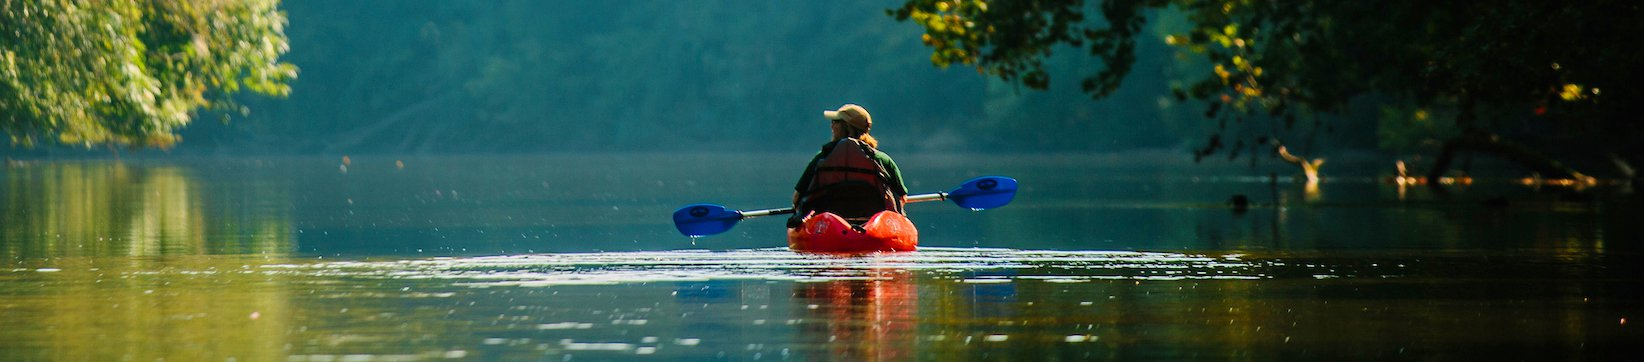 Yadkin River Paddle Trail in Surry County